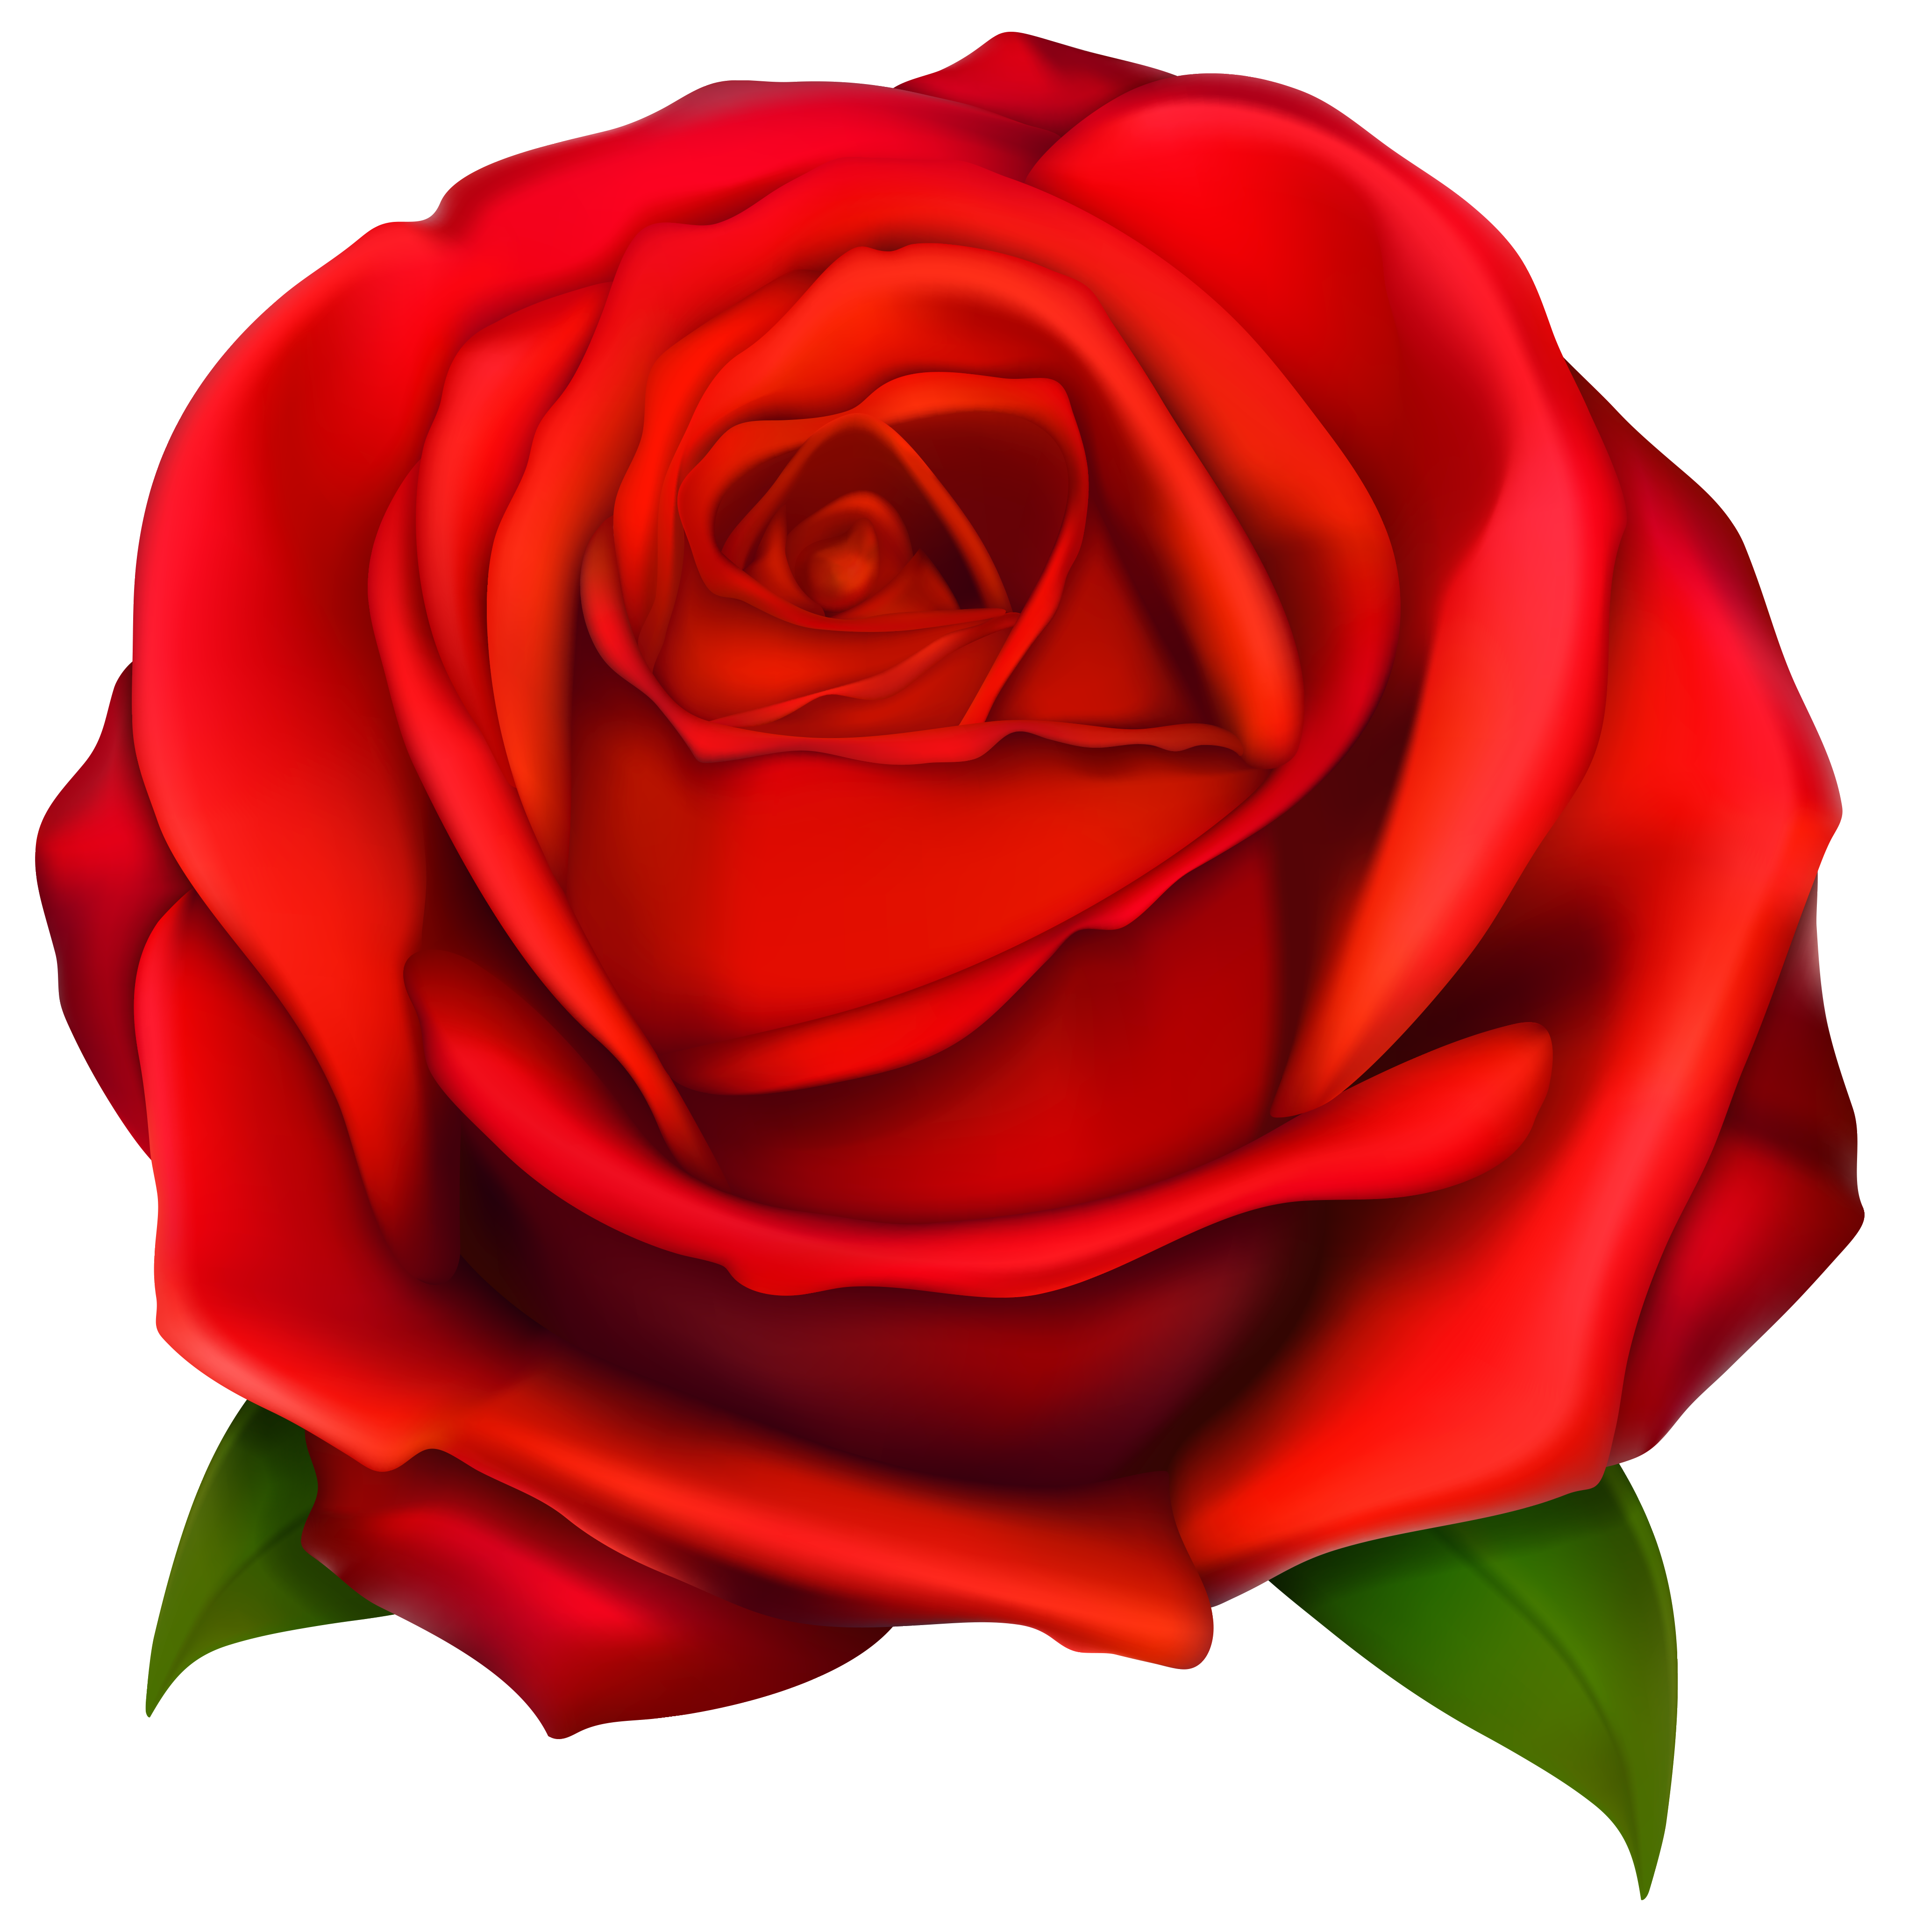 Image Of Clip Art Red Rose #7092, Red Ro-Image of Clip Art Red Rose #7092, Red Roses Clip Art Images Free .-4